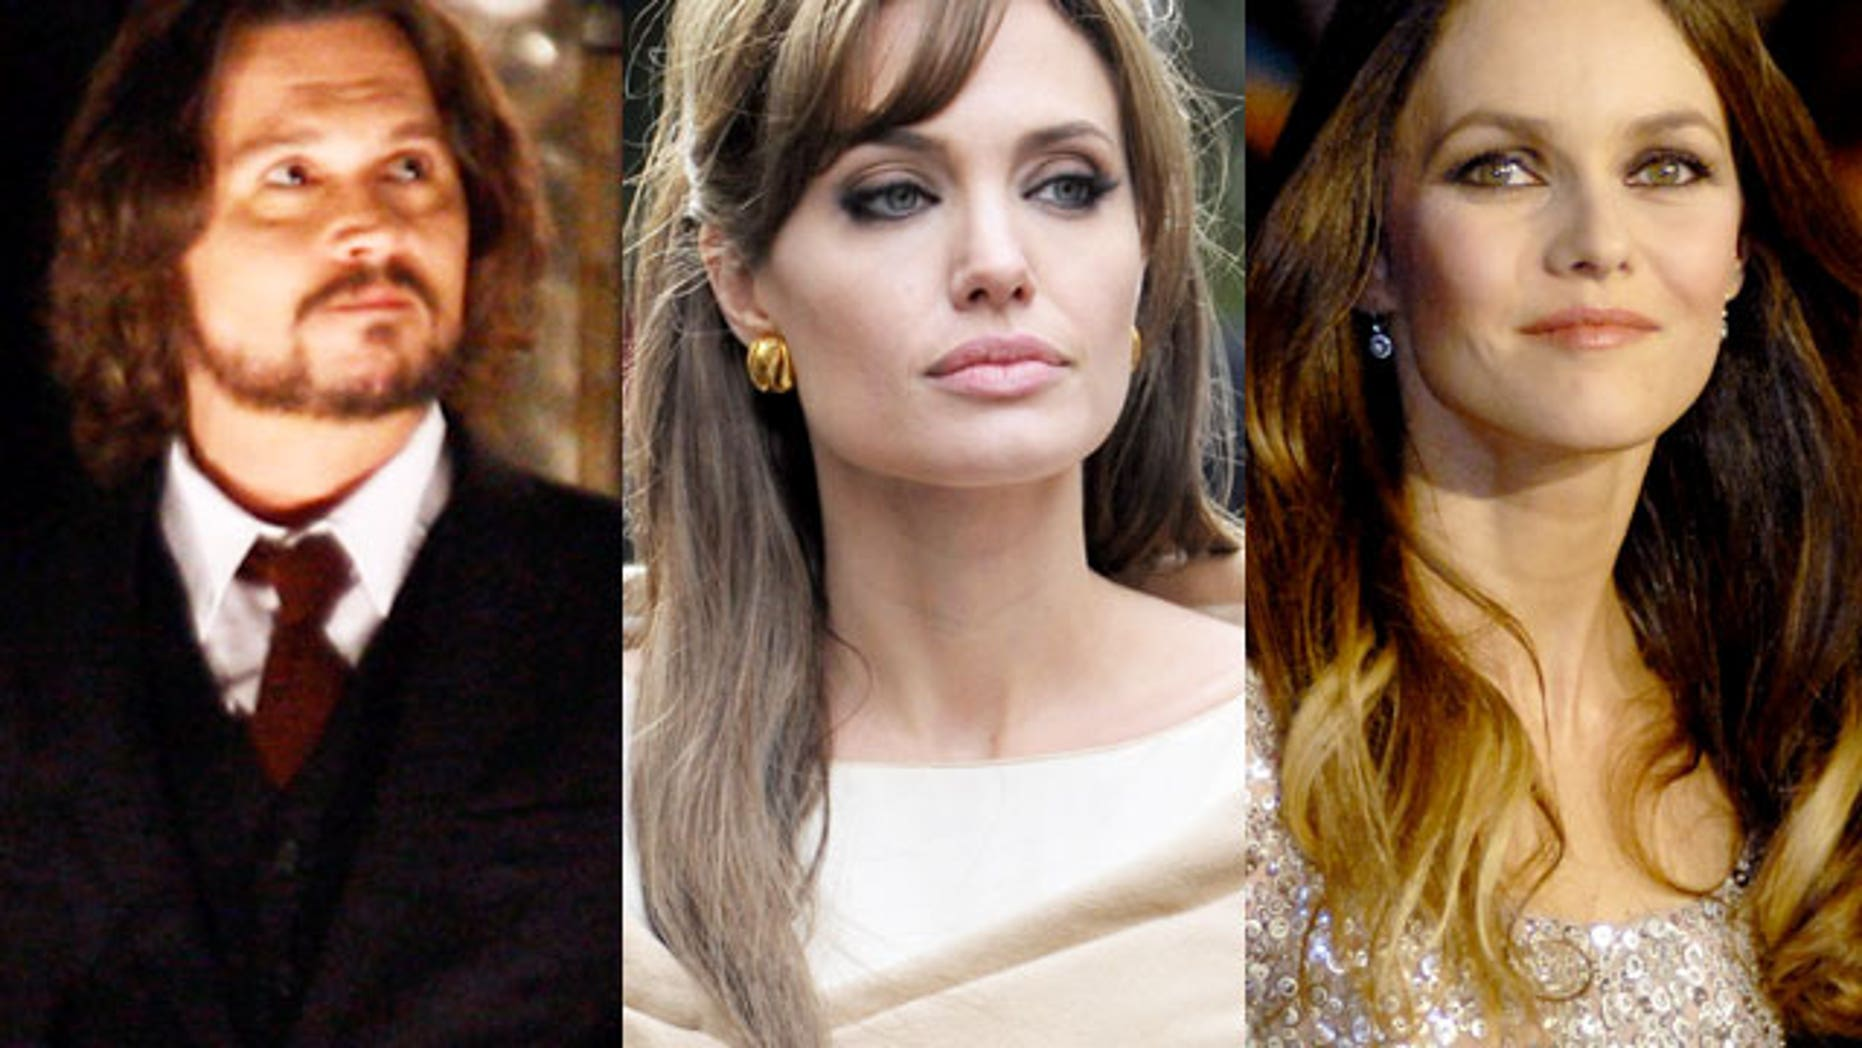 Johnny Depp and Angelina Jolie (center) will reportedly film a love scene together for their upcoming film, which made Depp's partner Vanessa Paradis uncomfortable, according to sources.